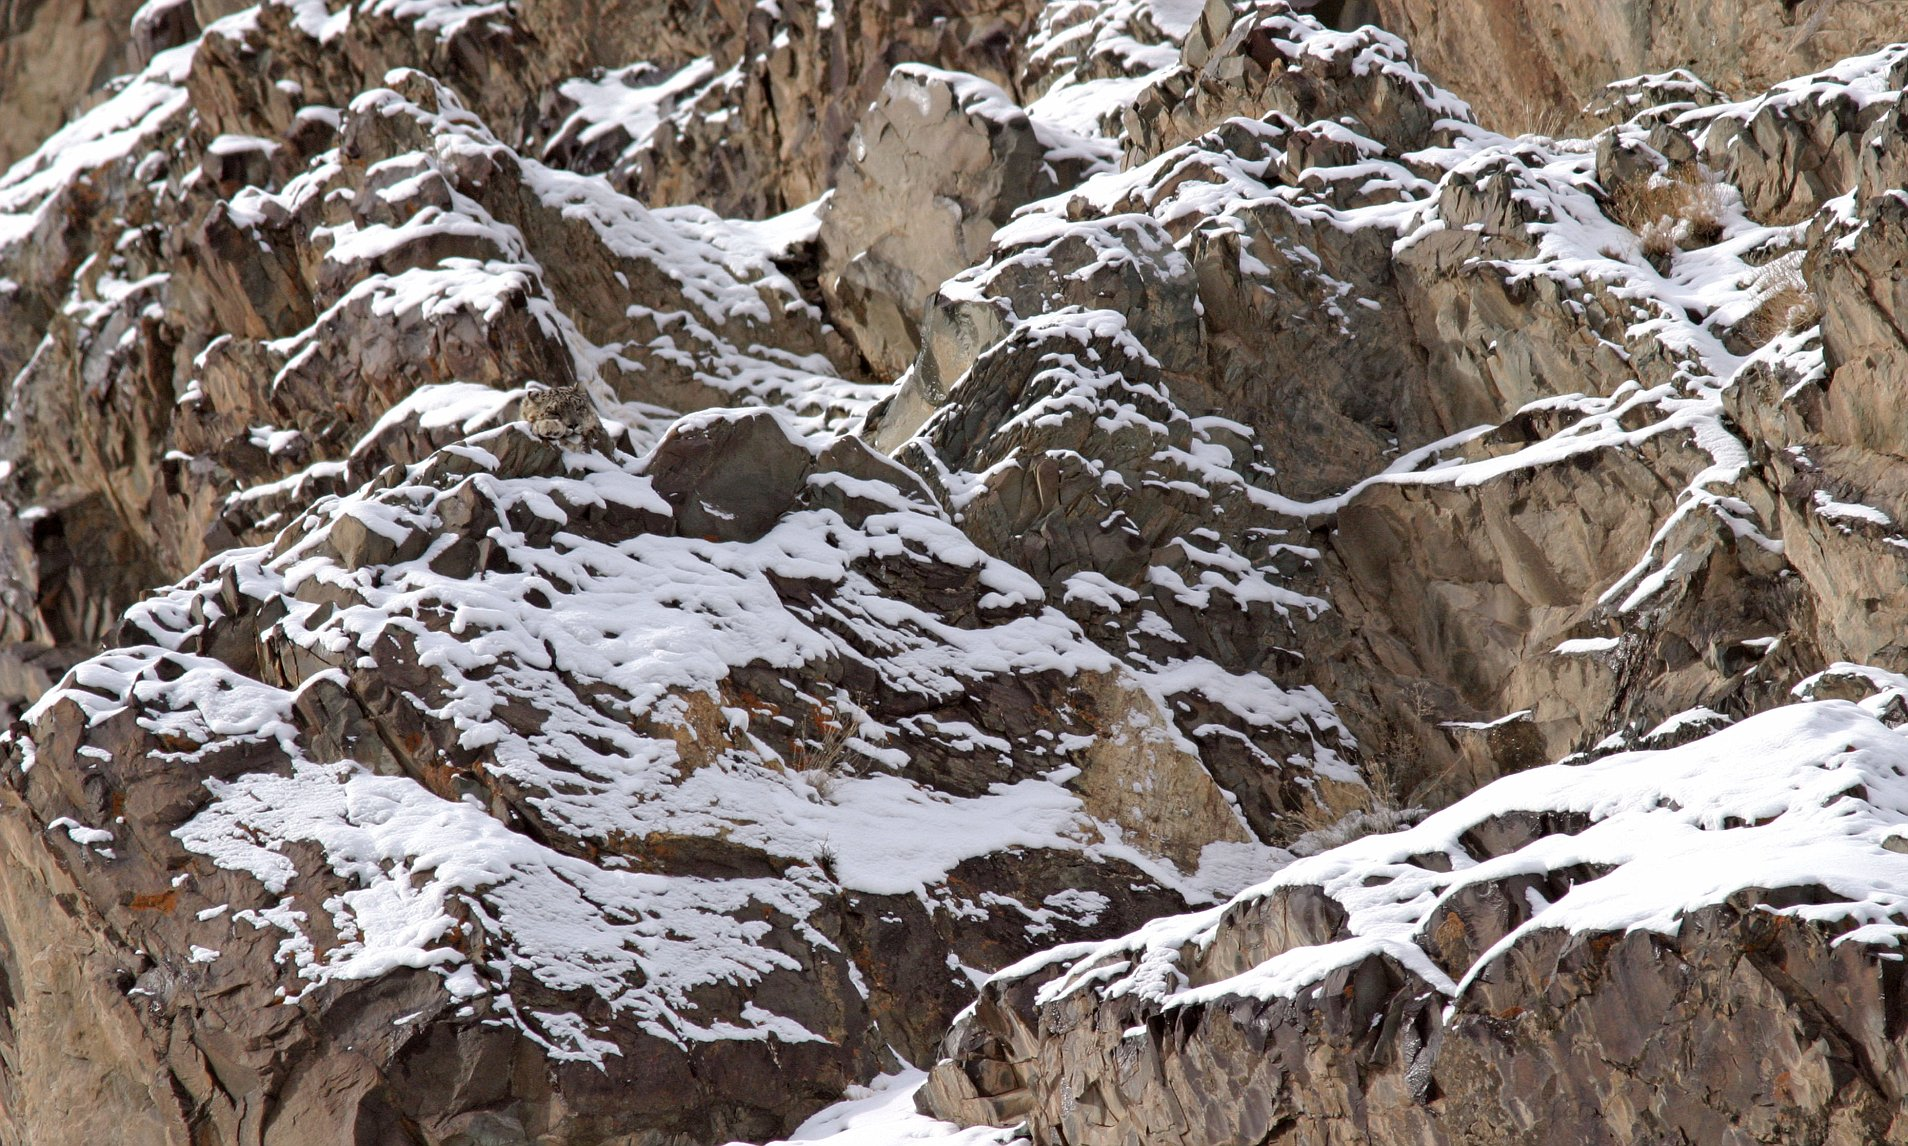 snowy mountain with hidden snow leopard